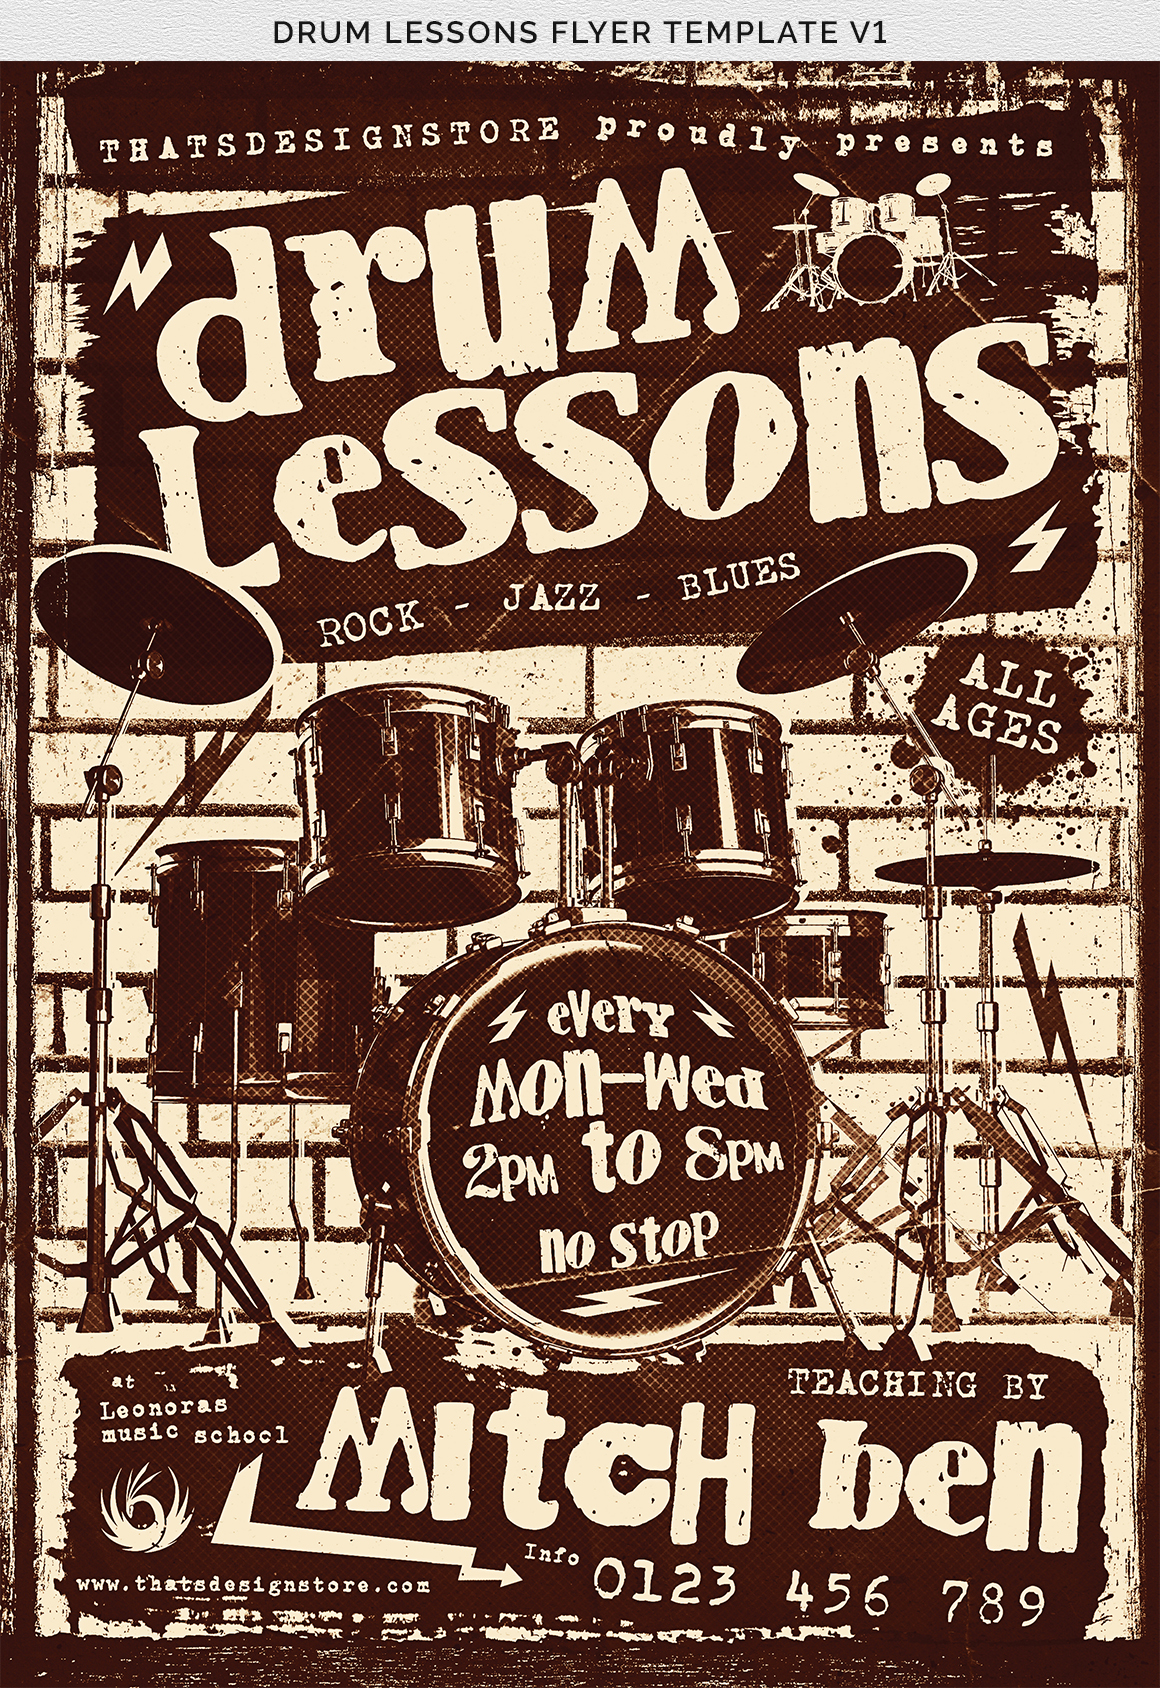 Drum Lessons Flyer Template V1 example image 11